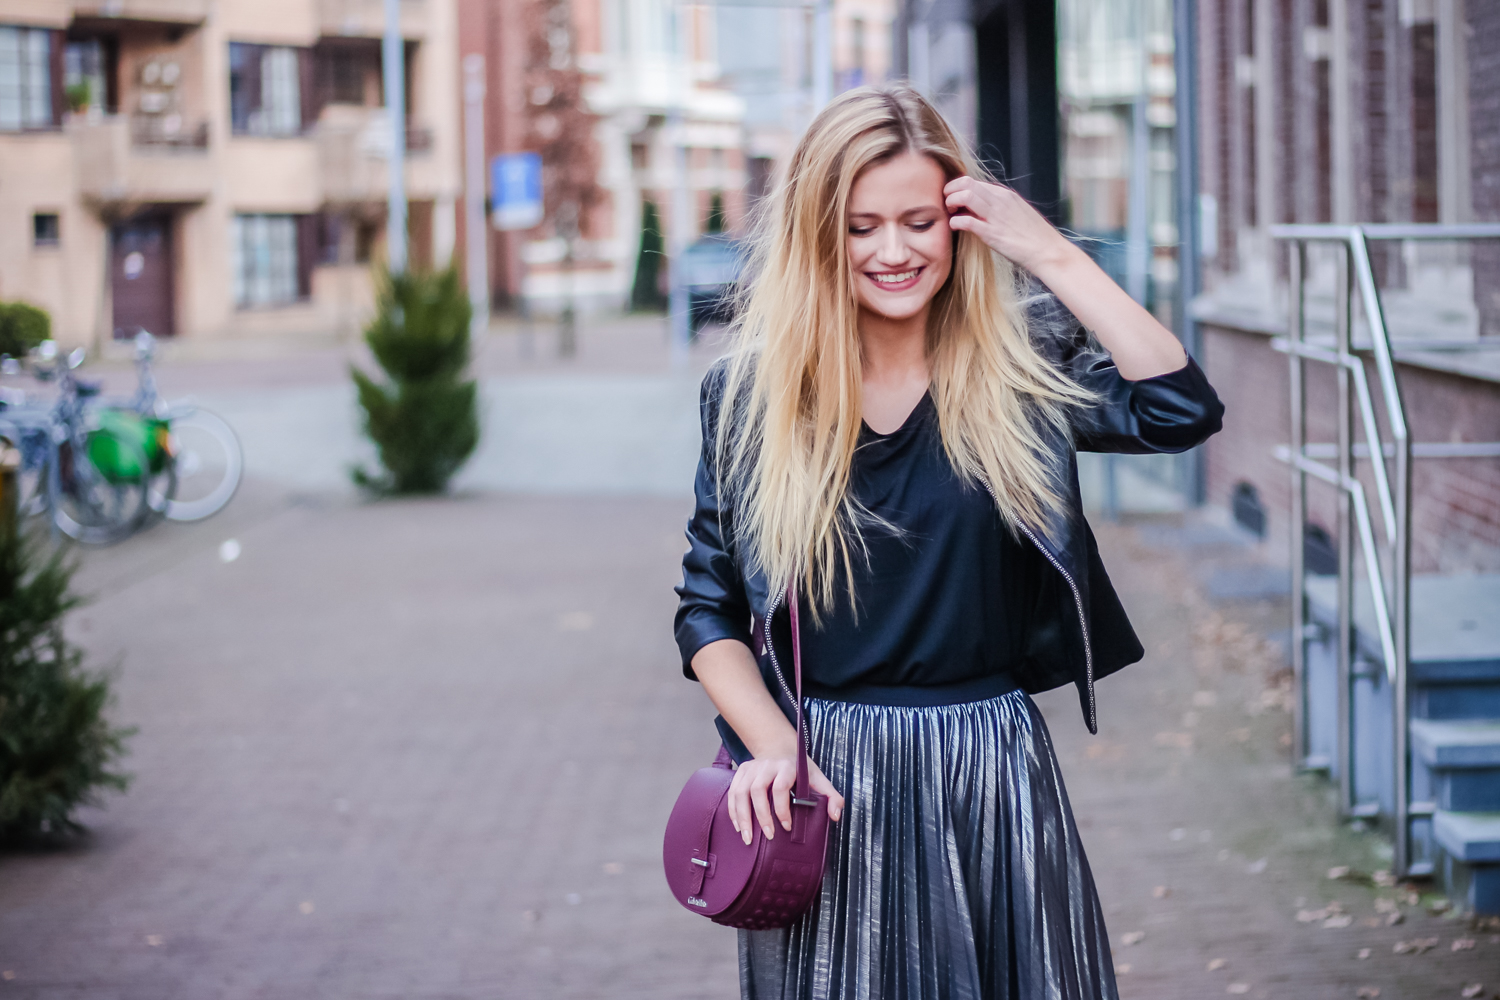 OOTD: Get Your Shine On!